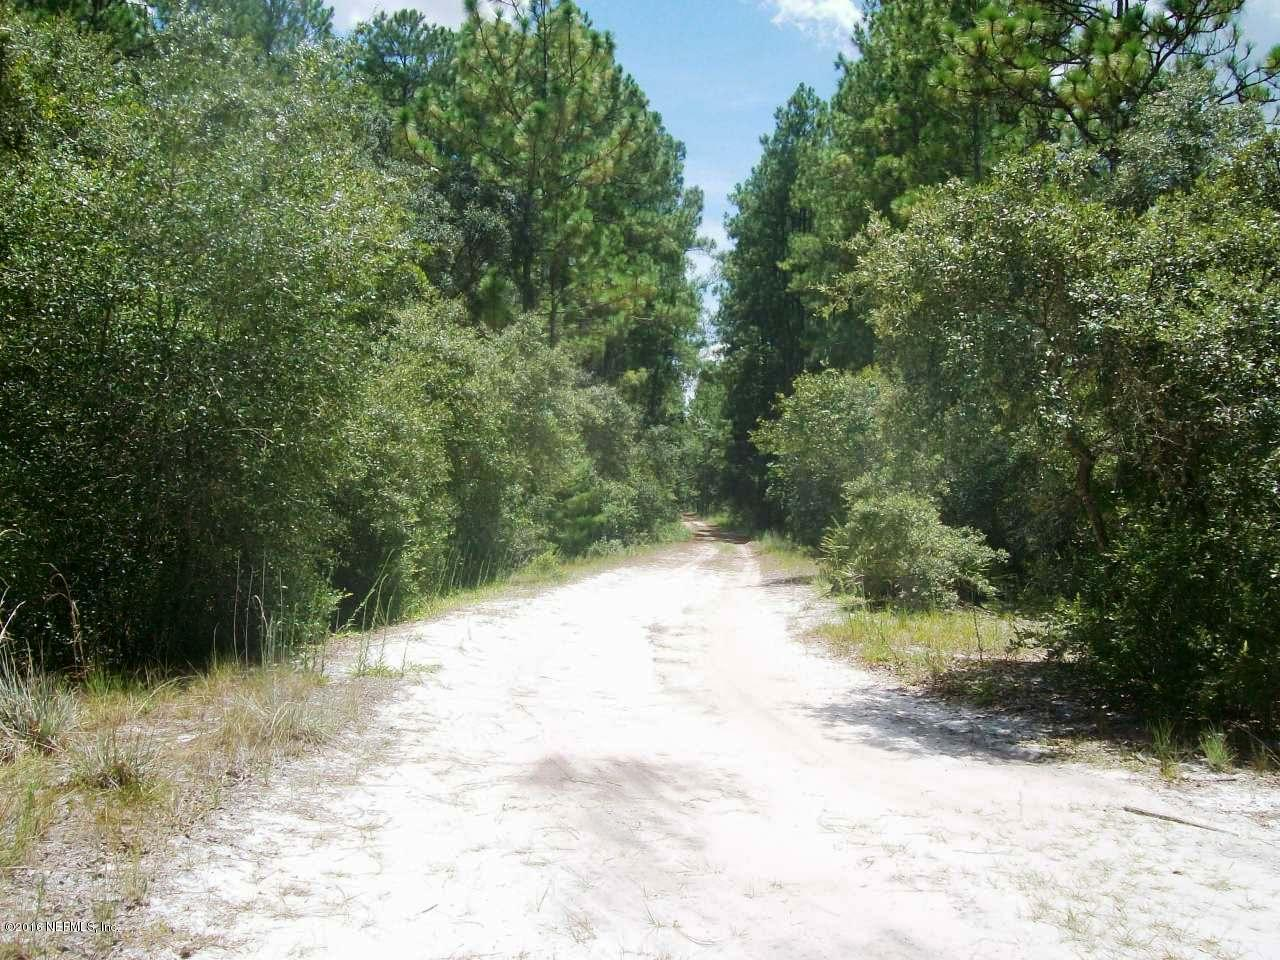 140 ARDEN, GEORGETOWN, FLORIDA 32139, ,Vacant land,For sale,ARDEN,845446